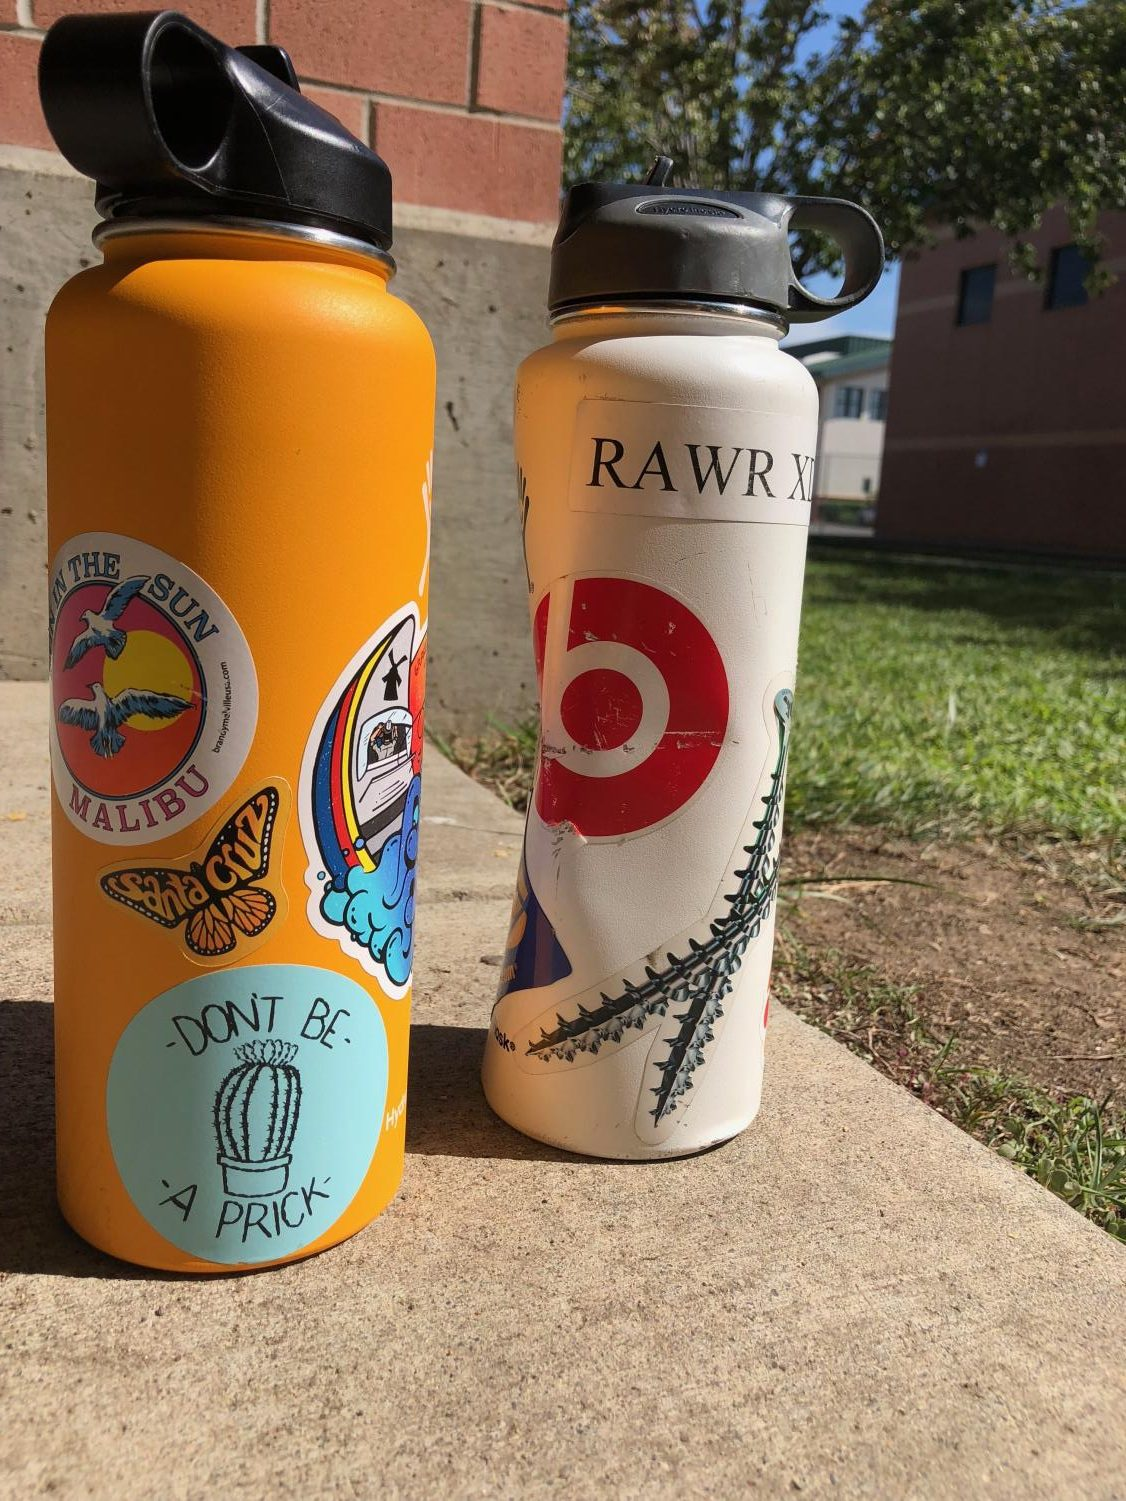 Student hydroflask stickers have raised the eyebrows of concerned gbhs administrators